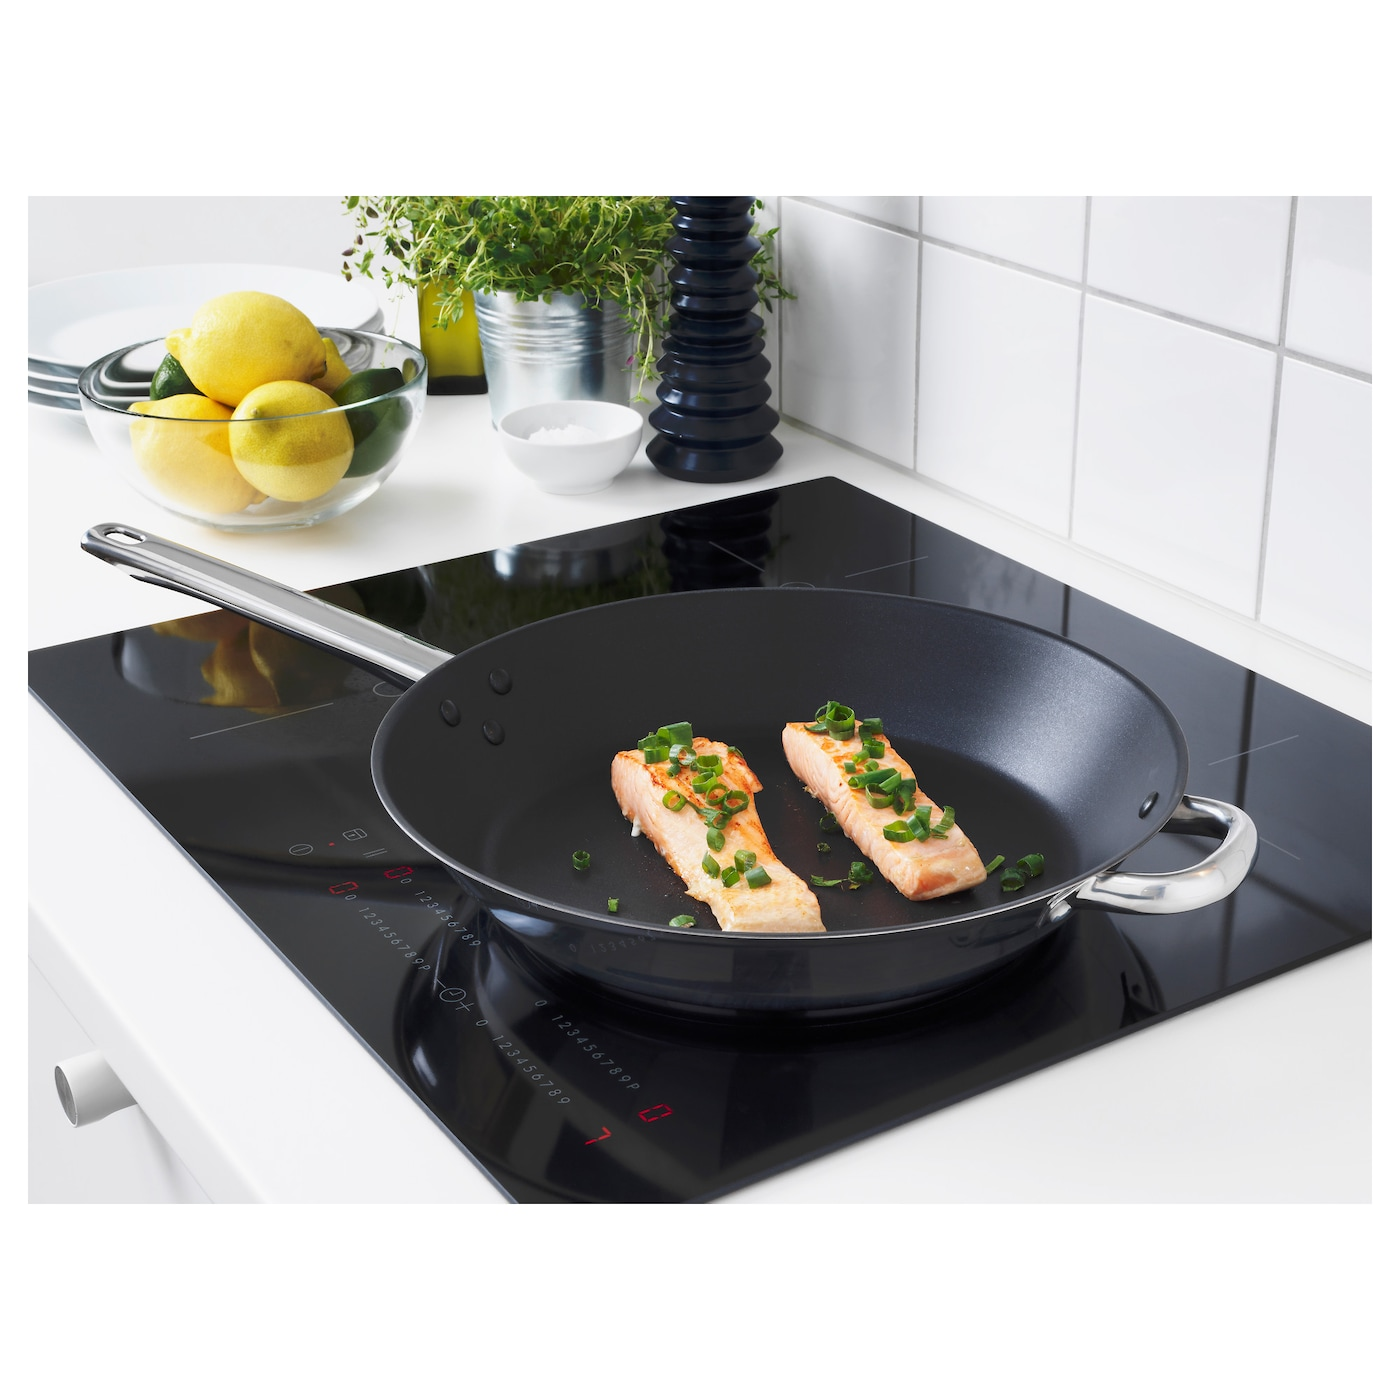 IKEA OUMBÄRLIG frying pan Works well on all types of hobs, including induction hob.